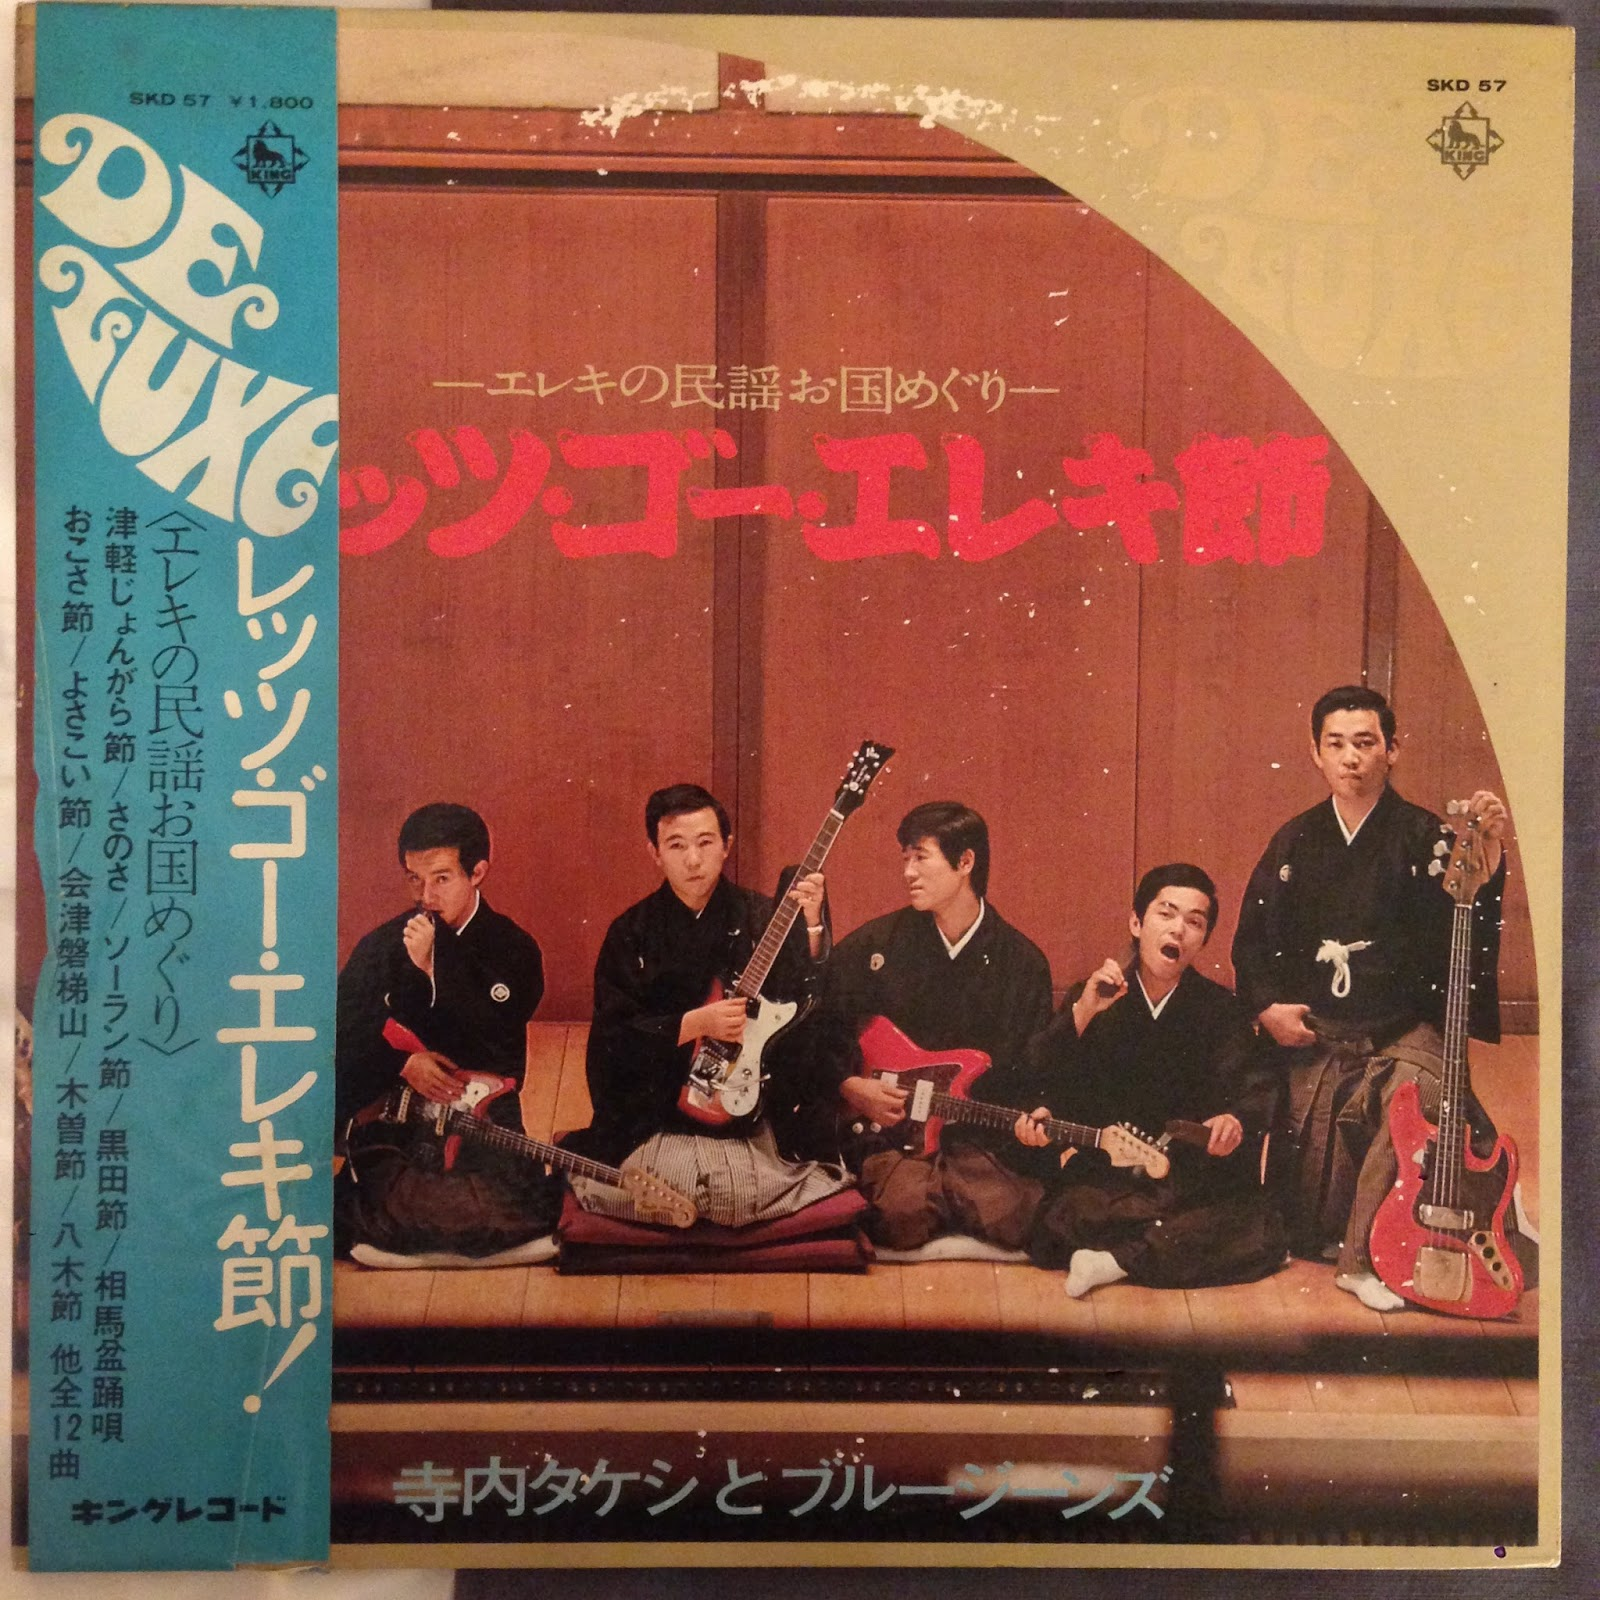 Takeshi Terauchi and The Blue Jeans - Let's Go Eleki-Bushi